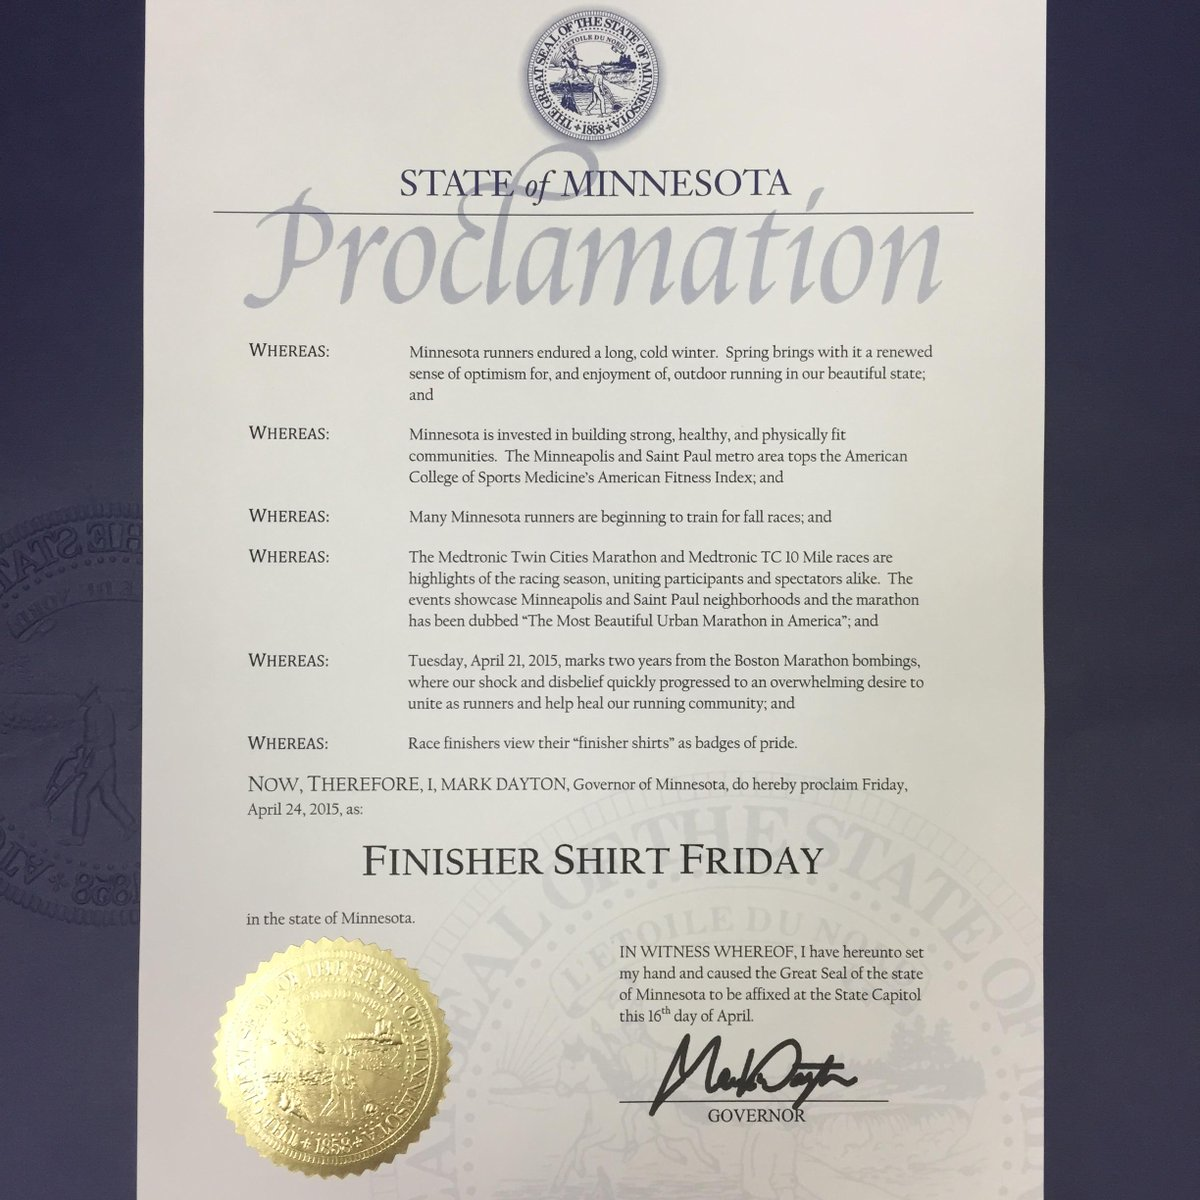 It's official! #FinisherShirtFriday has been proclaimed by @GovMarkDayton for next Friday! http://t.co/xUZ8Vhe5zN http://t.co/cPkiNjdYvo